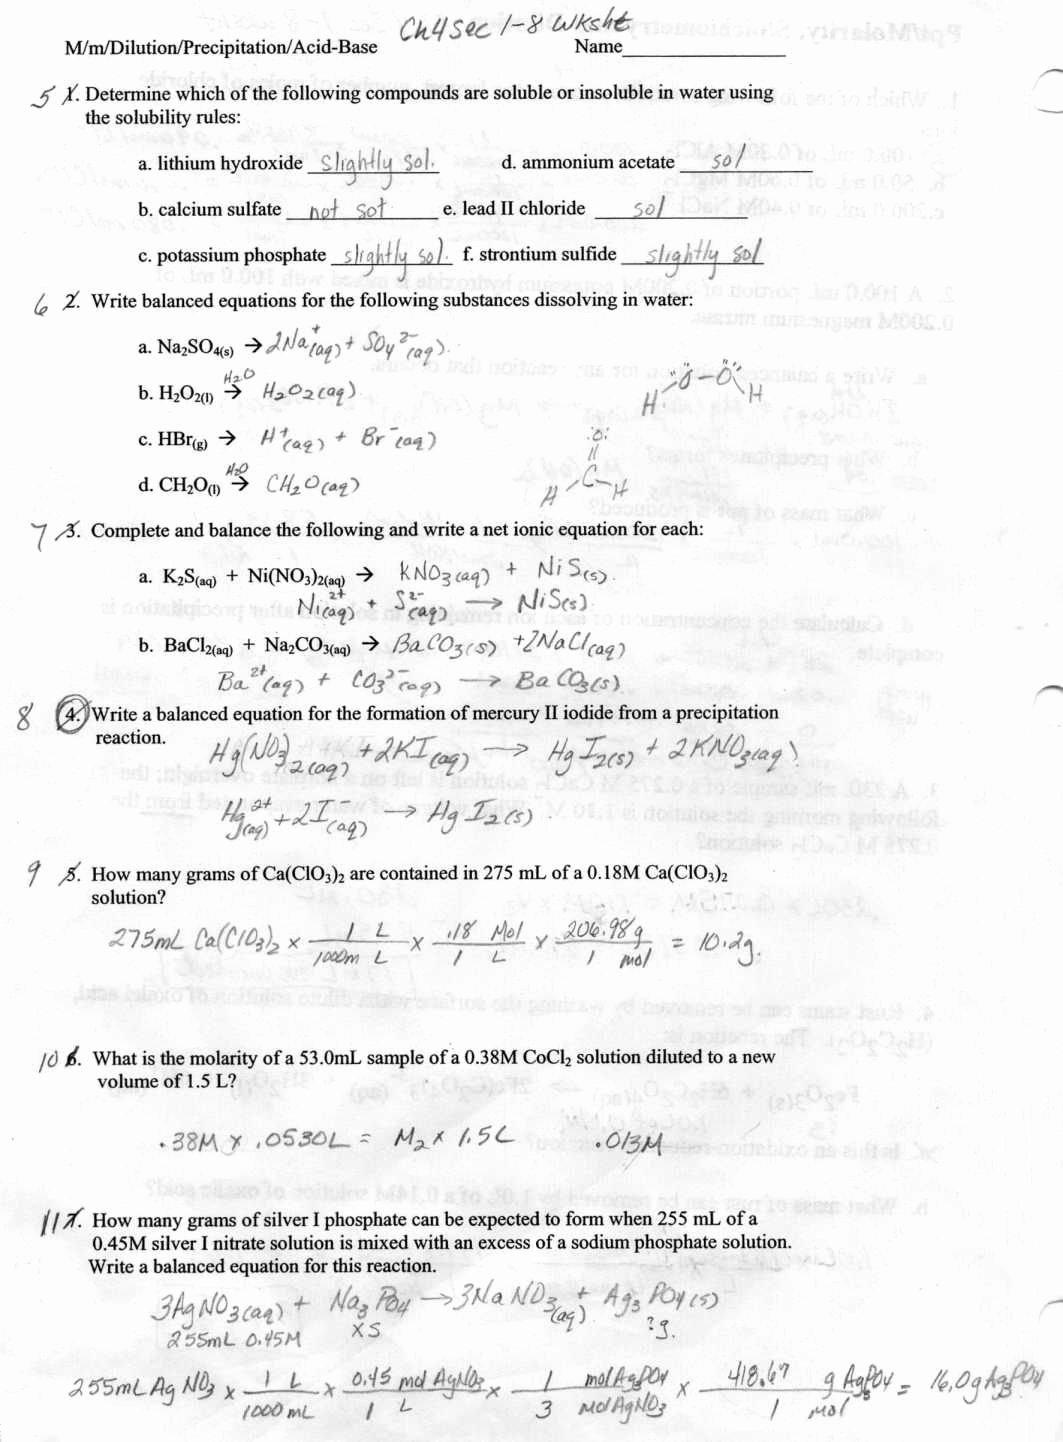 Limiting Reactant Worksheet Answers Elegant Limiting Reagent Worksheet Answers